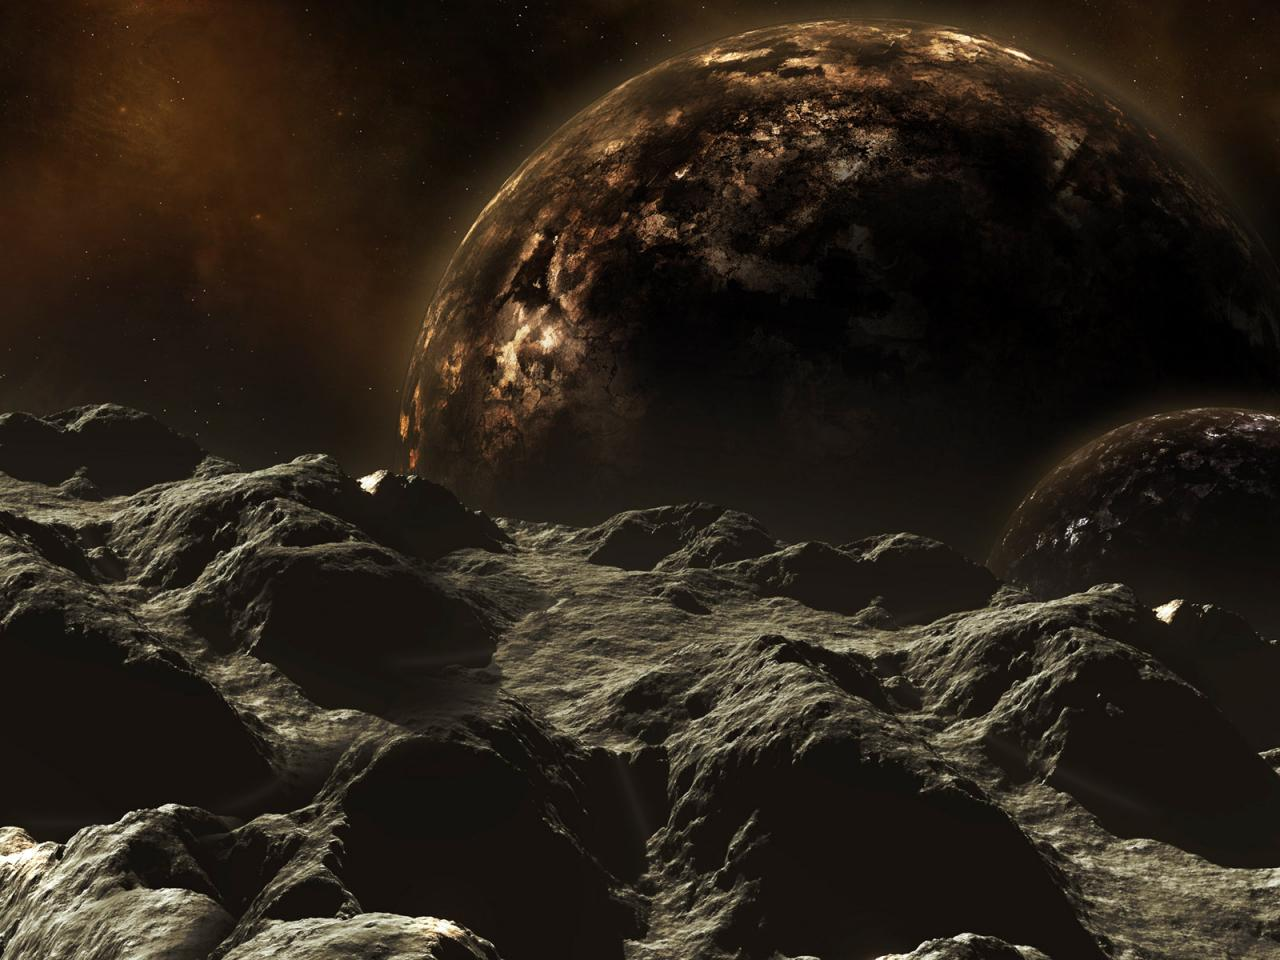 space planets 1280x960